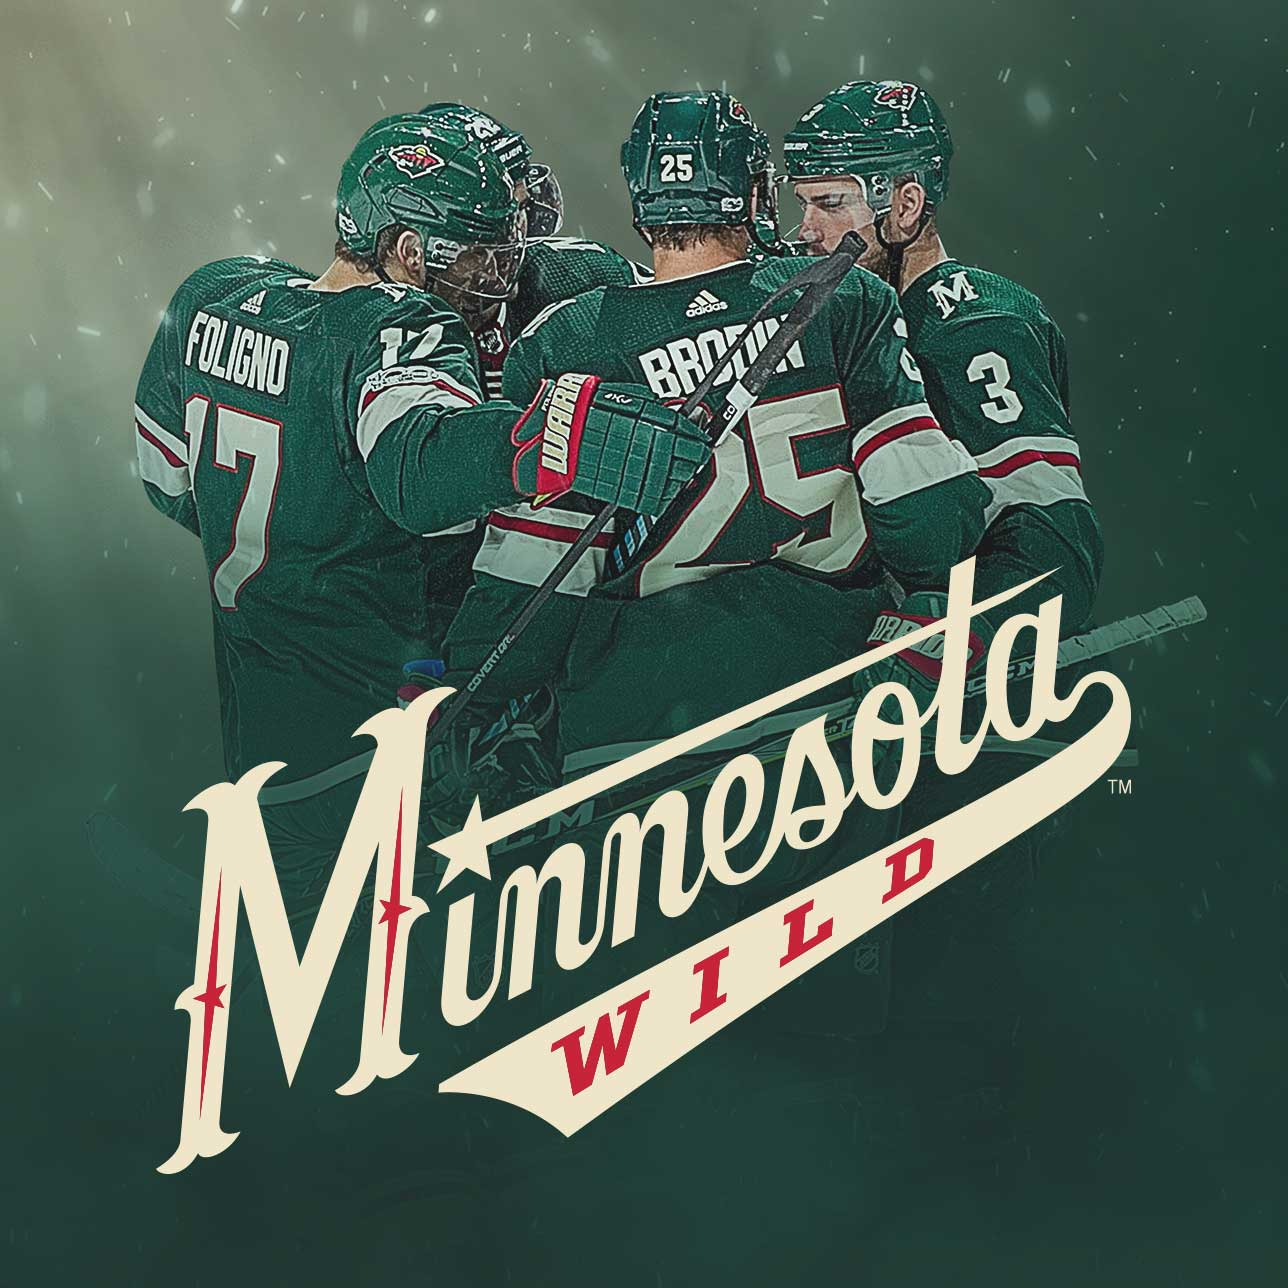 Minnesota Wild vs. New Jersey